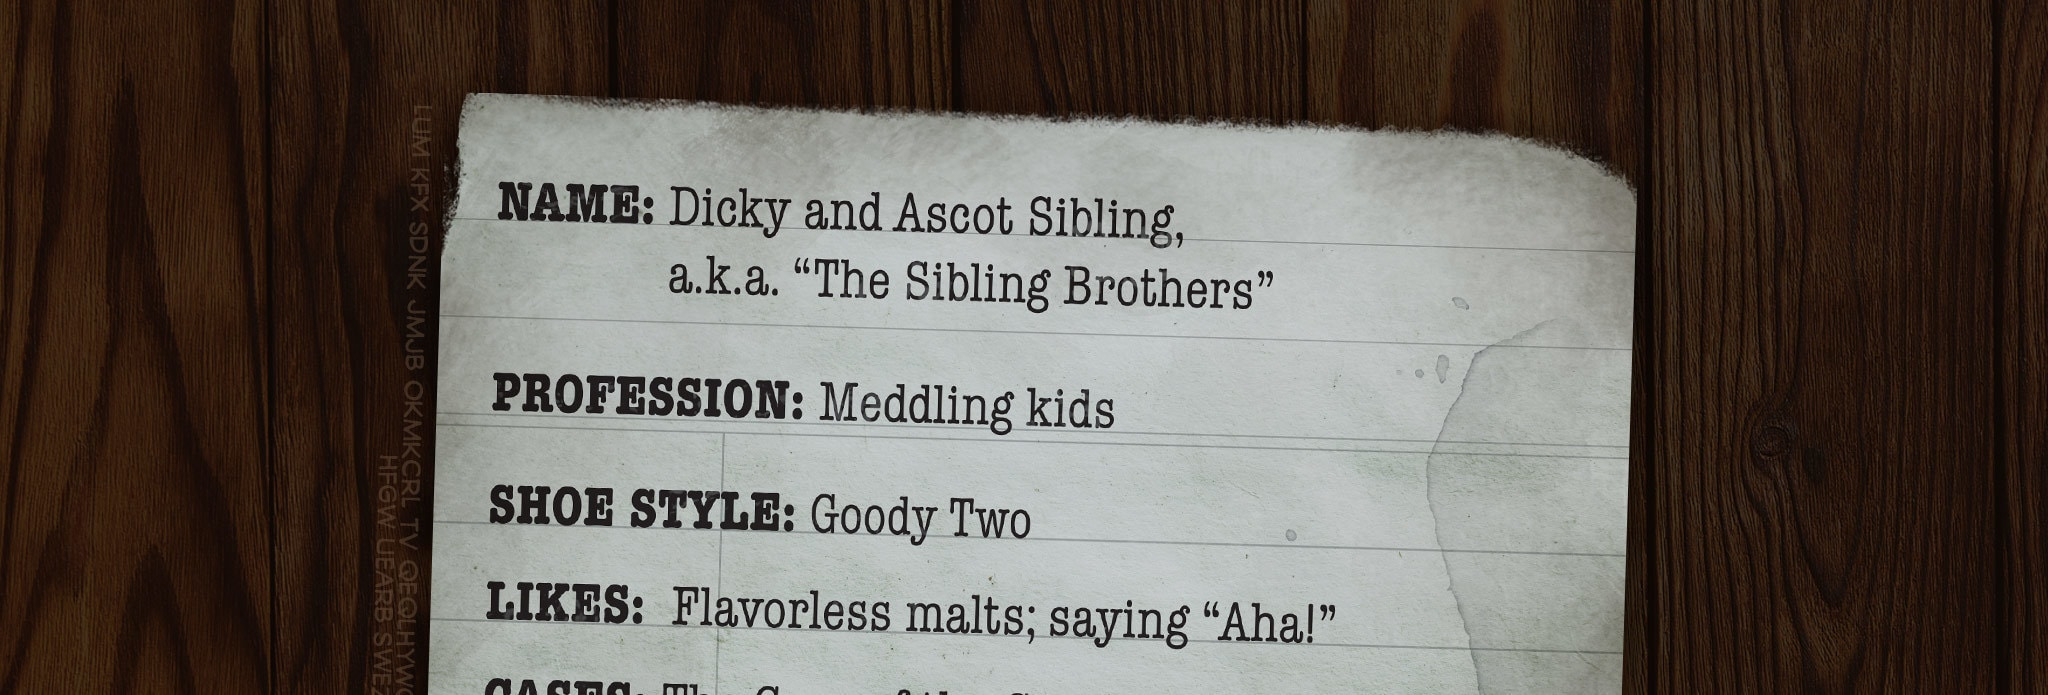 """NAME: Dicky and Ascot Sibling, a.k.a. """"The Sibling Brothers"""" PROFESSION: Meddling kids SHOE STYLE: Goody Two LIKES: Flavorless malts; saying """"Aha!"""" CASES: The Case of the Caper-Case Caper; The Horrifying Hair-Raising Happenstance at Hyperbole Hall; The Befuddling Scuttlebutt of the Scuttled Butler's Cuttlefish Hut HOBBY AS KIDS: Going to church; finishing each other's sentences HOBBY AS ADULTS: Going to jail; finishing each other's life sentences"""